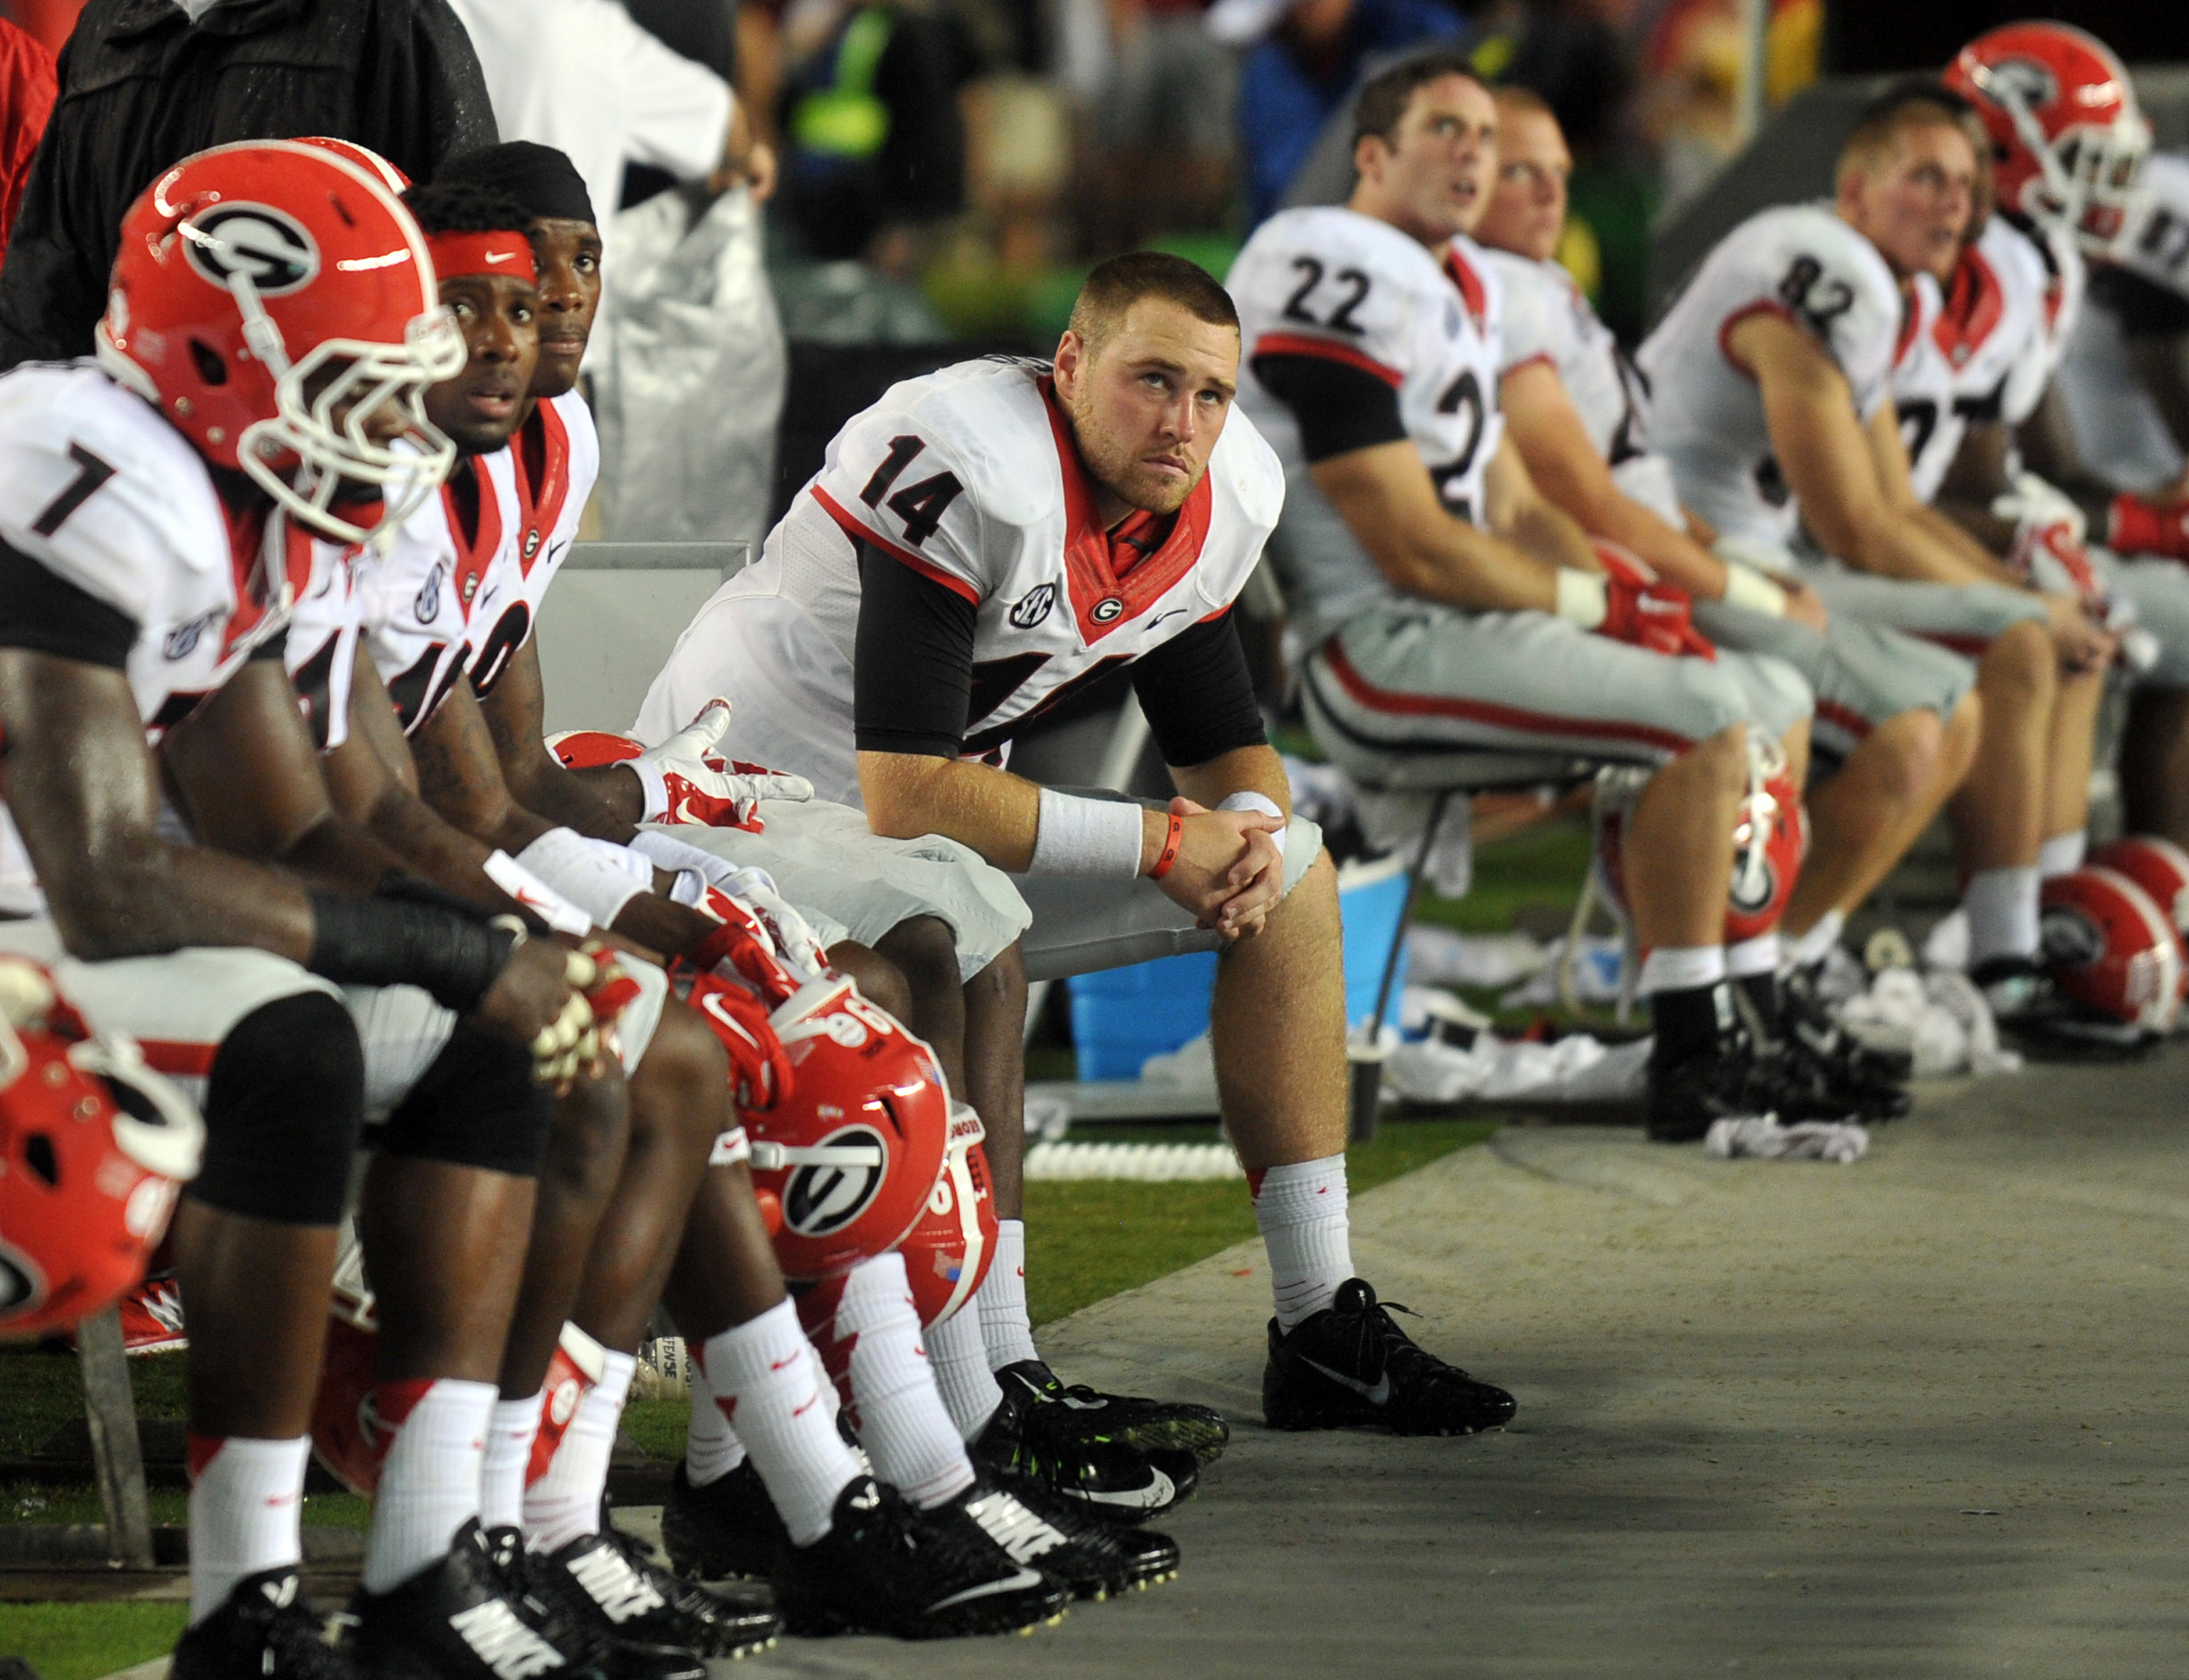 Georgia players watch the final seconds of their loss to South Carolina. (Atlanta Journal-Constitution via AP)